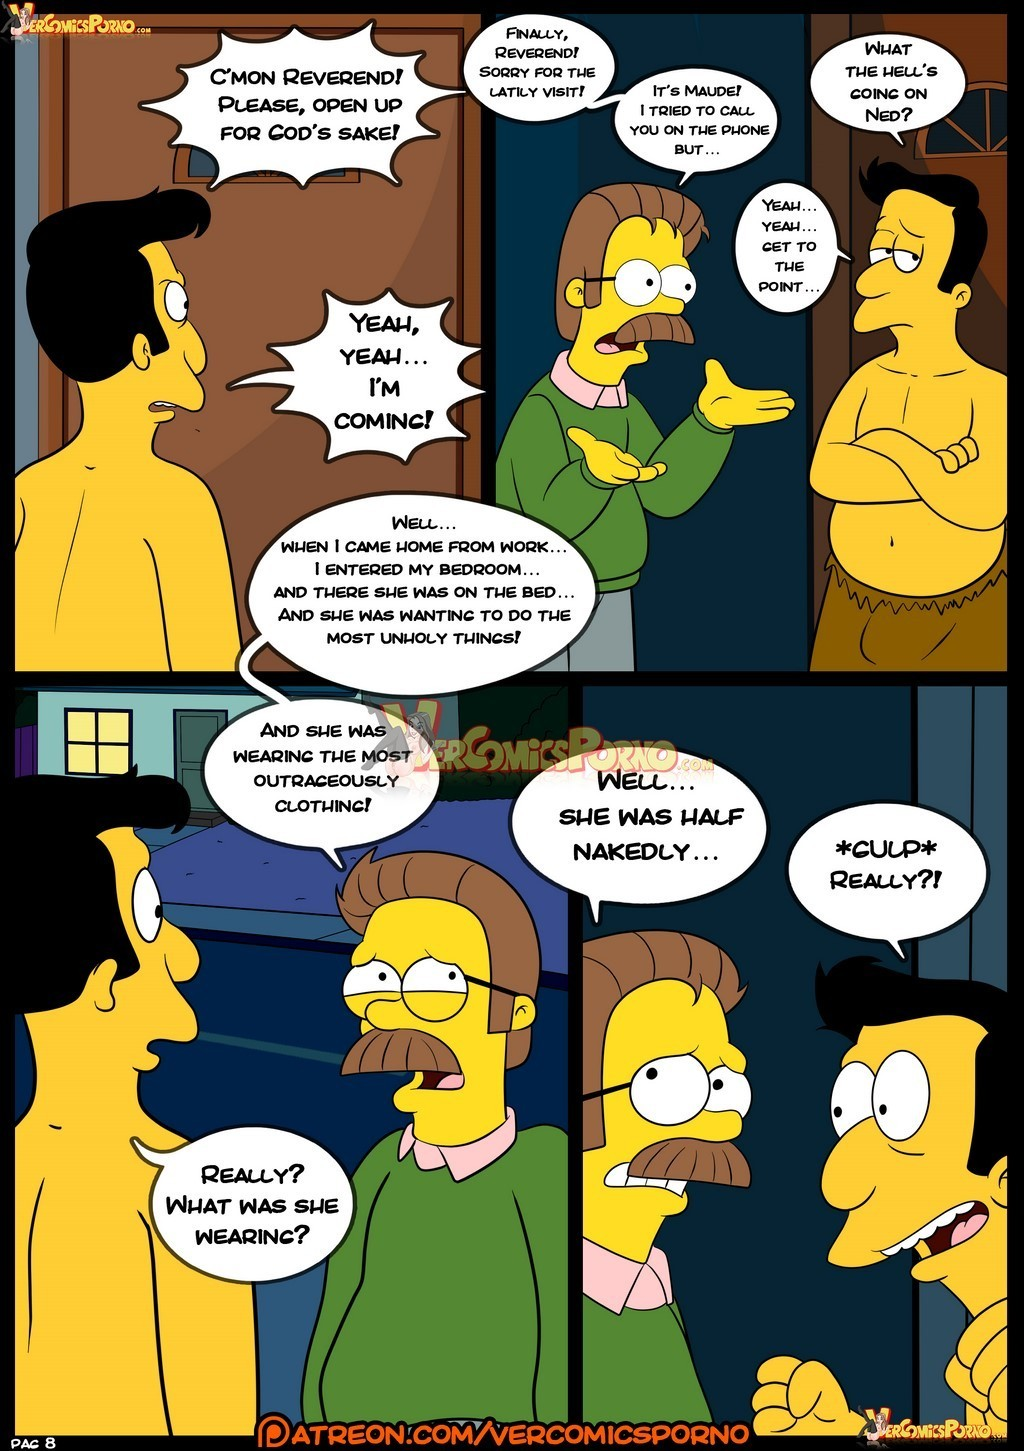 9 18 - The Simpsons. Part 8.